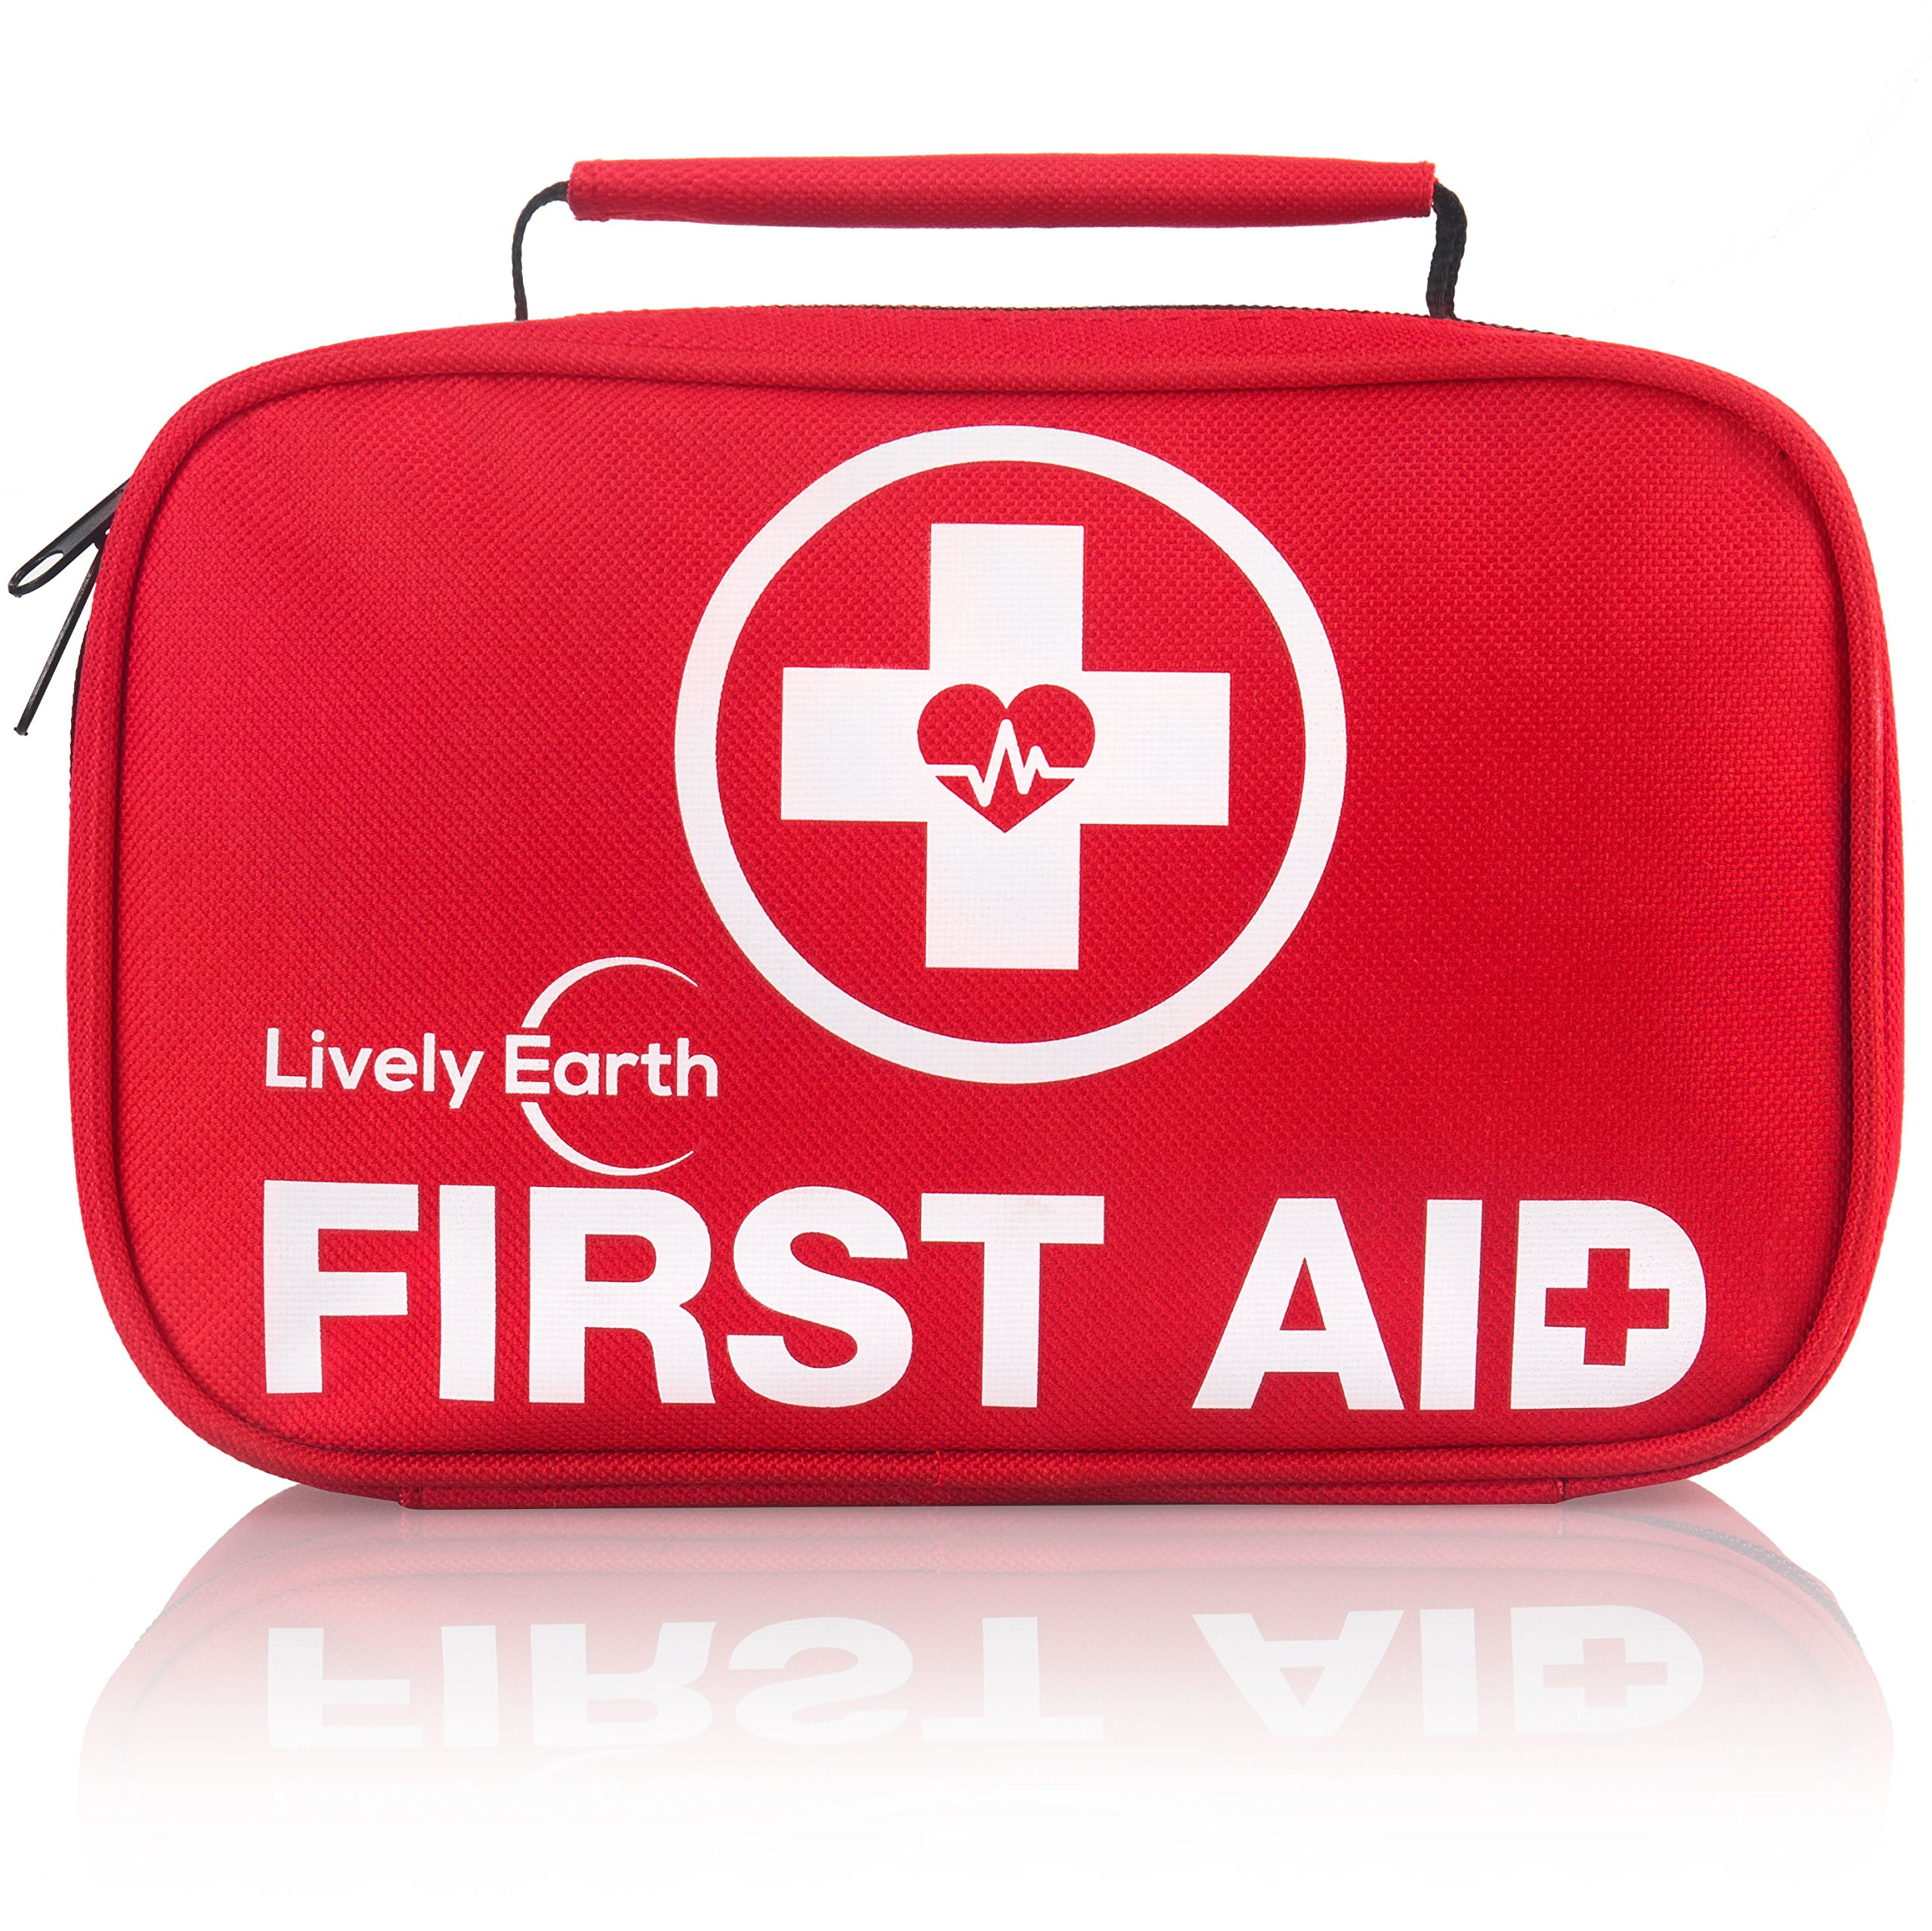 Lively Earth Emergency First Aid Kit for Car, Home, Camping or Travel - Emergency Medical Kits and Supplies for Disaster Preparedness - Security for Your Family